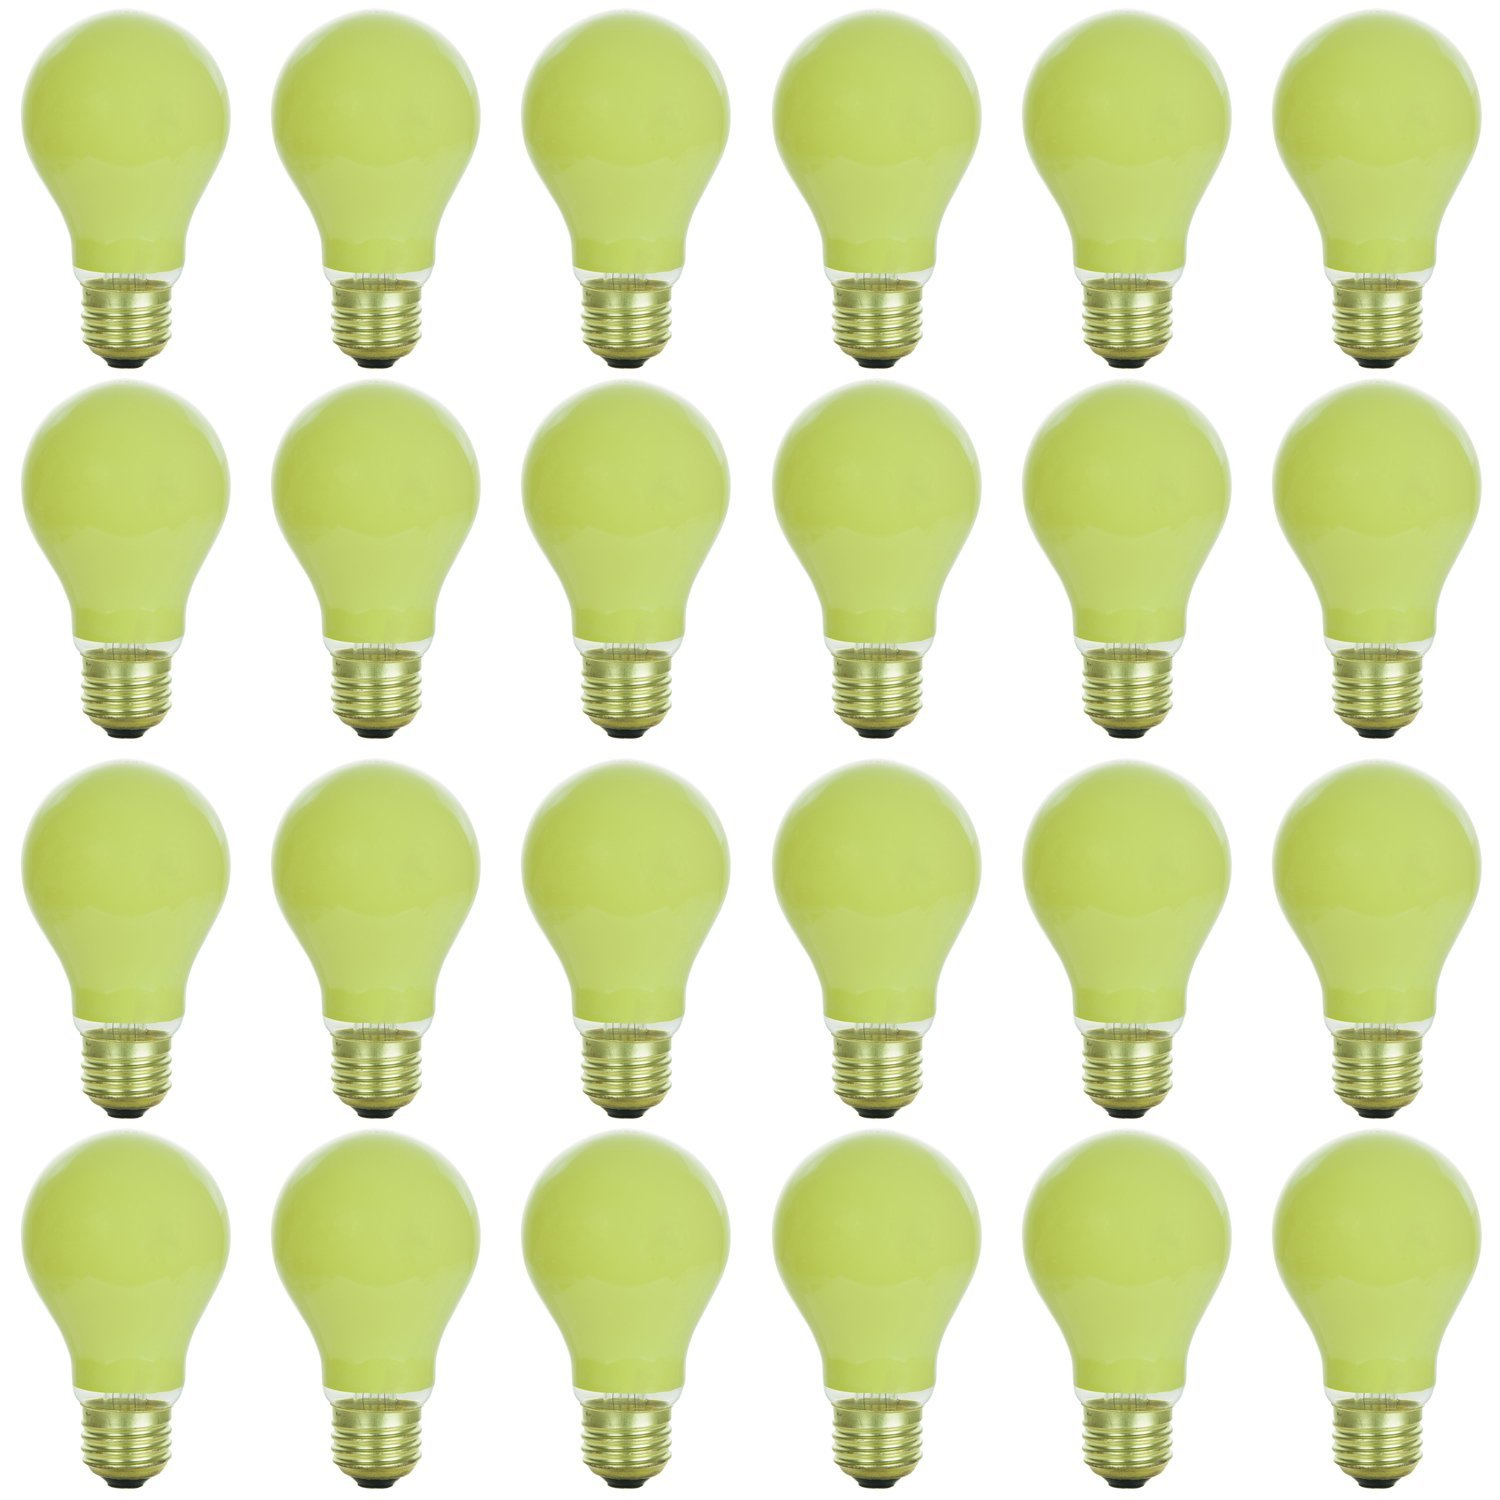 24 Pack of Sunlite 40 watt Ceramic Yellow Colored Incandescent Light Bulb - Parties, Decorative, and Holiday 1,250 Average Life Hours